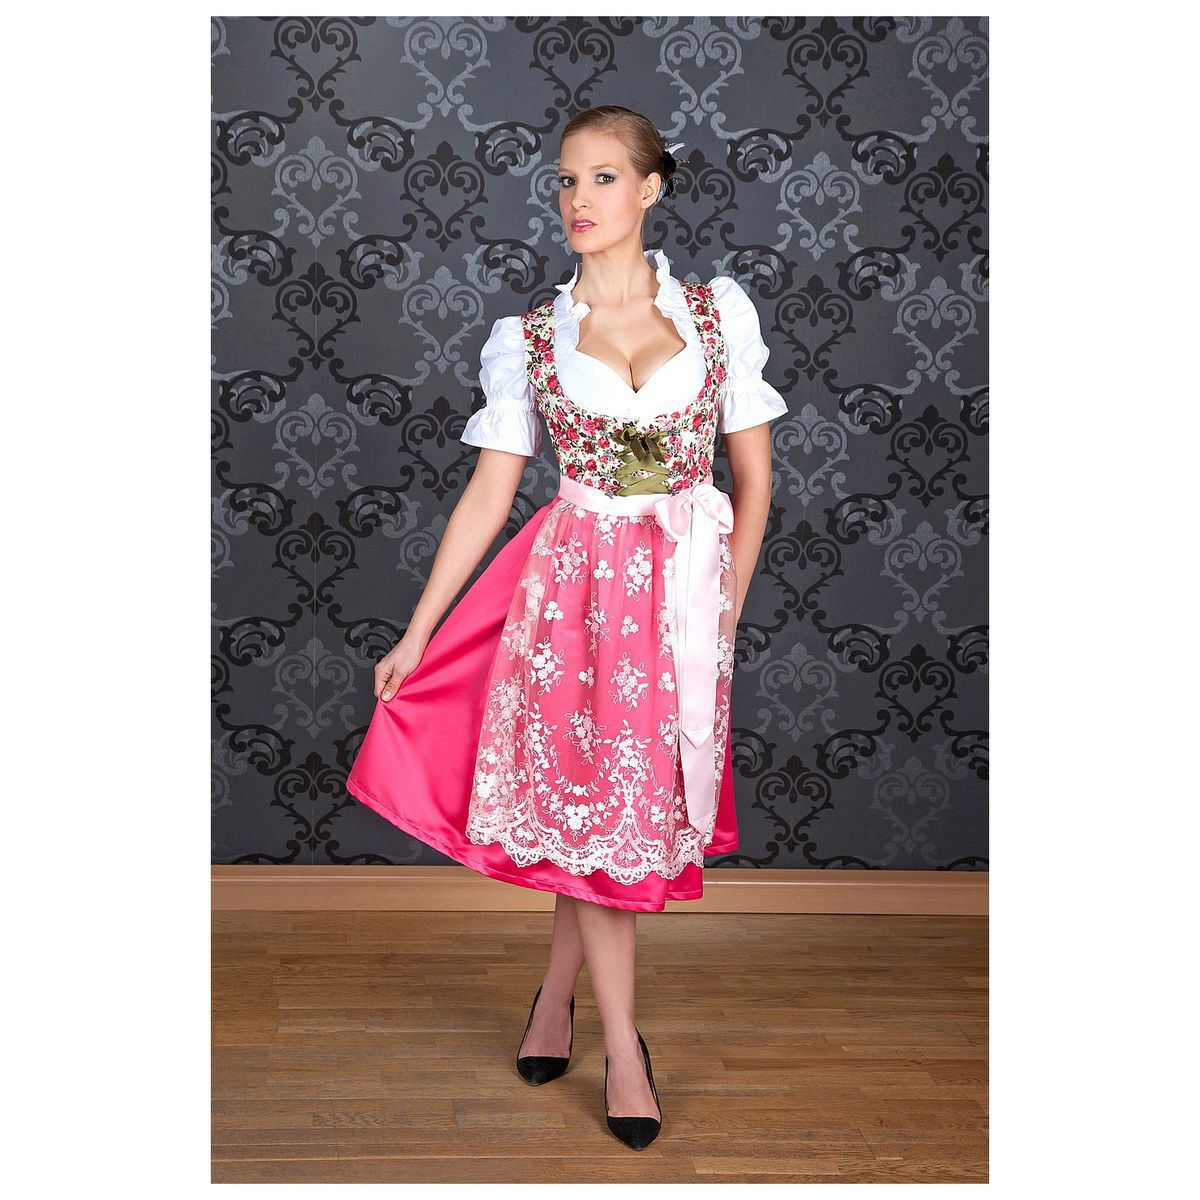 edelnice midi dirndl made in germany blumen pink 44 karstadt online shop. Black Bedroom Furniture Sets. Home Design Ideas